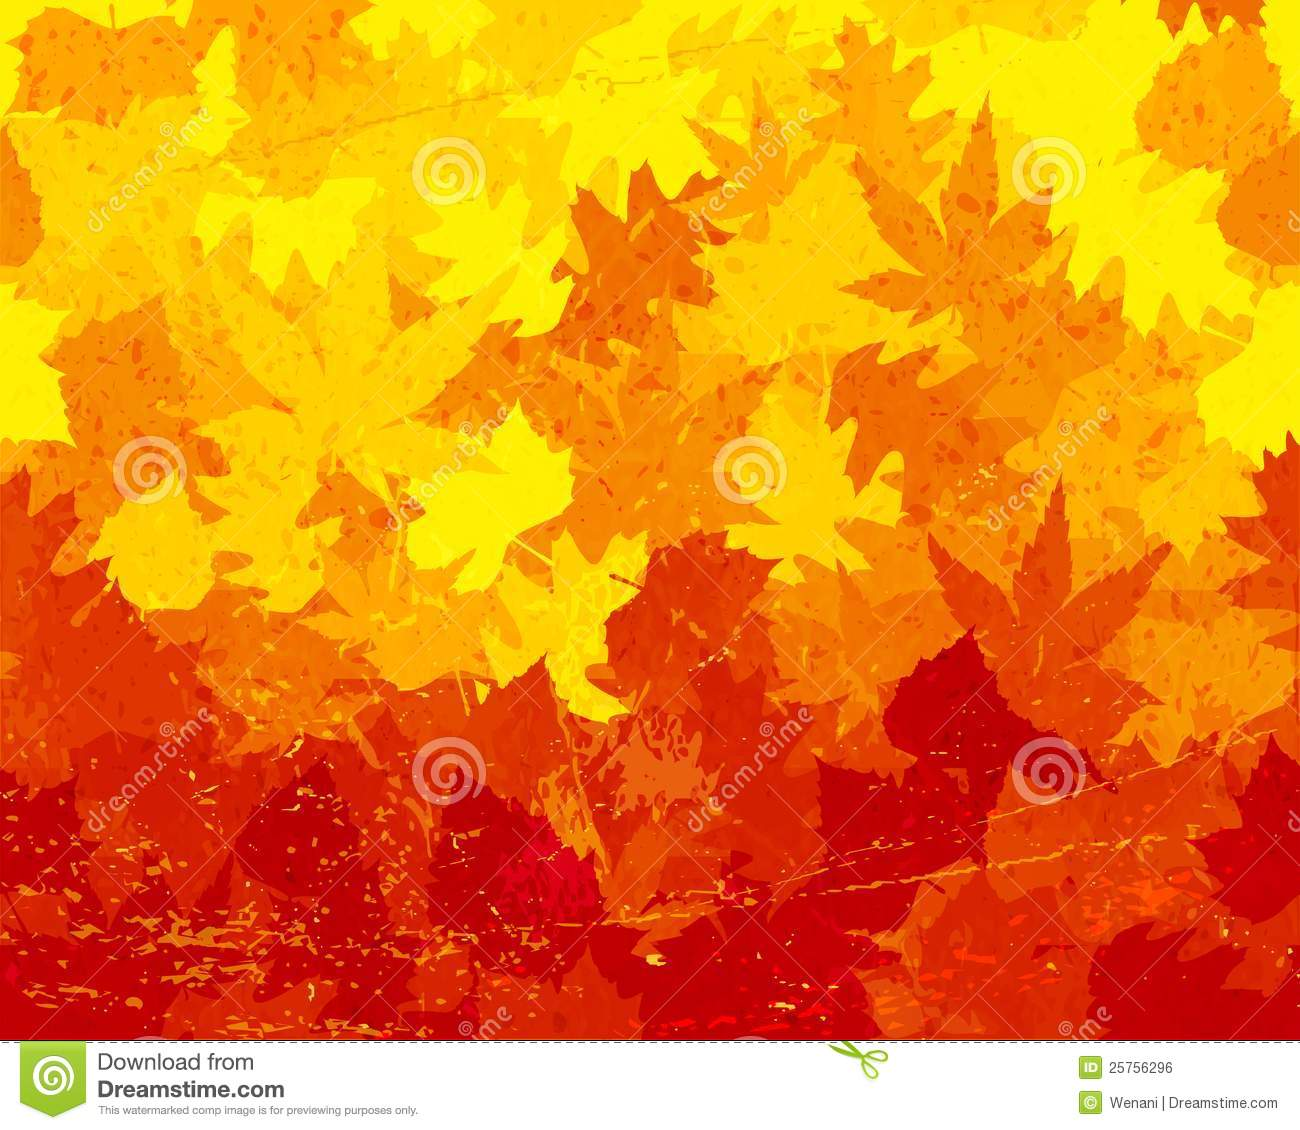 Distressed Autumn Leaves Wallpaper Stock Vector